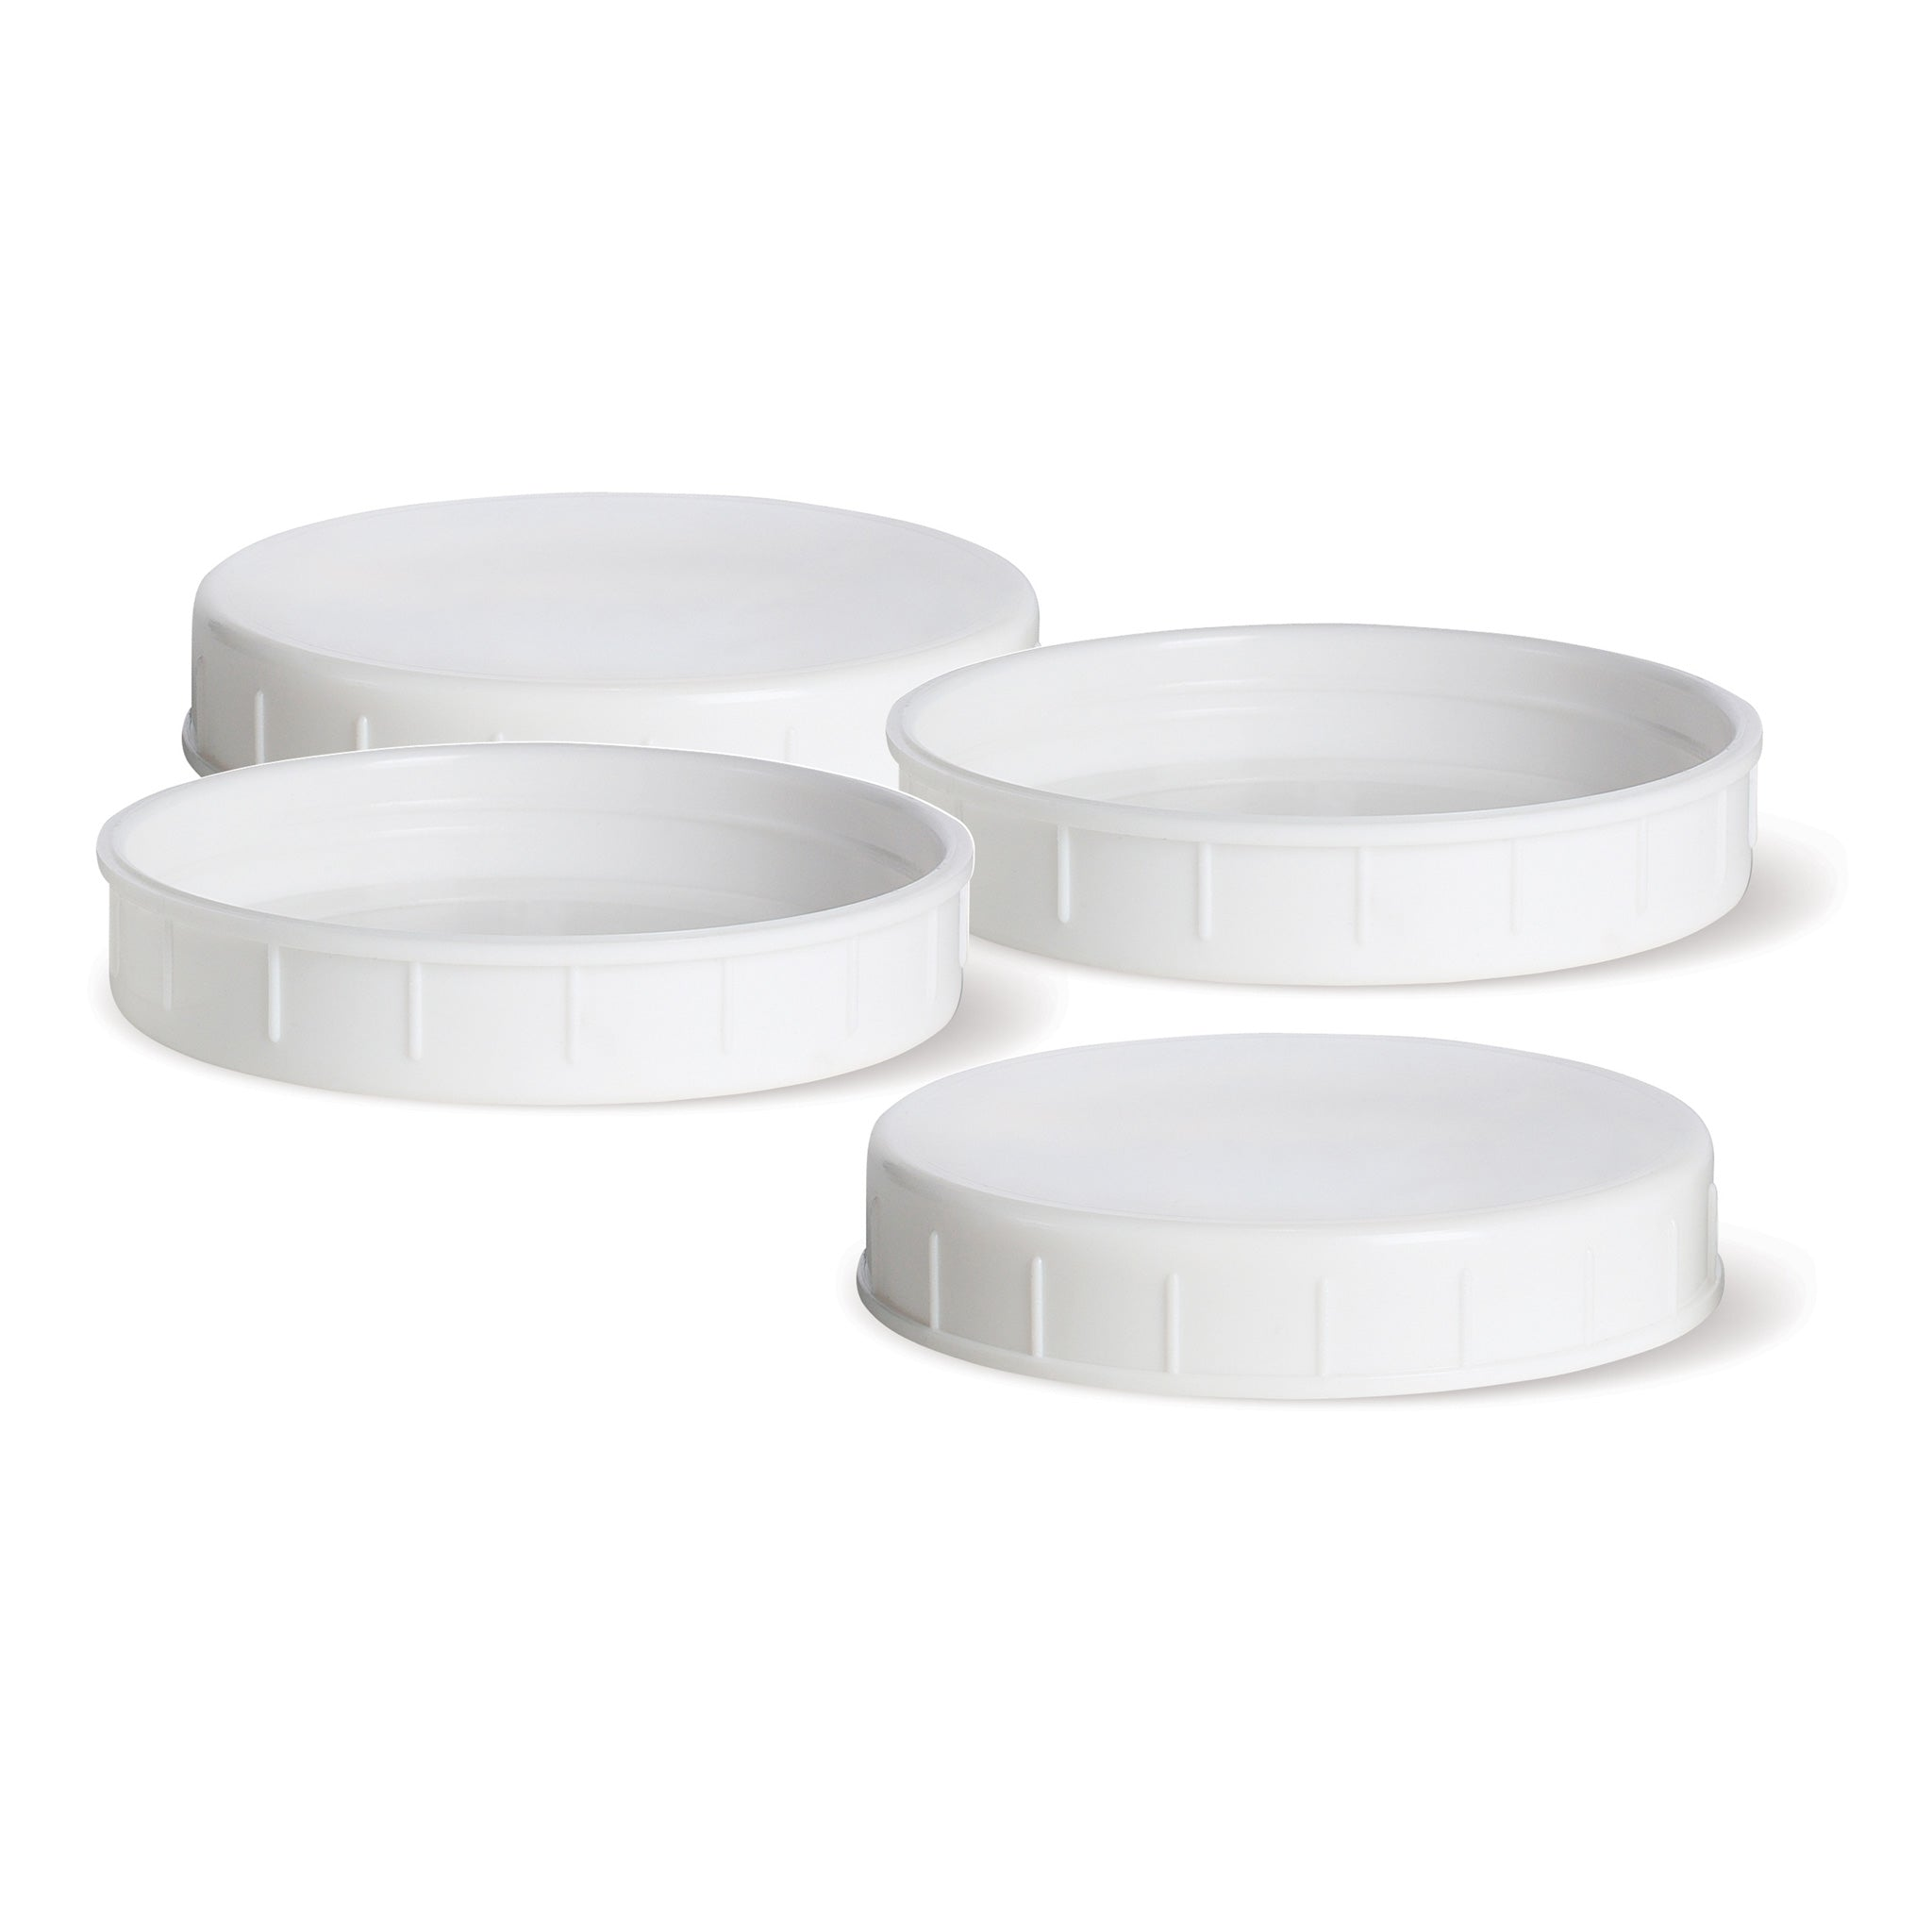 Regular Mouth Mason Jar Plastic Lids, 4-Pack